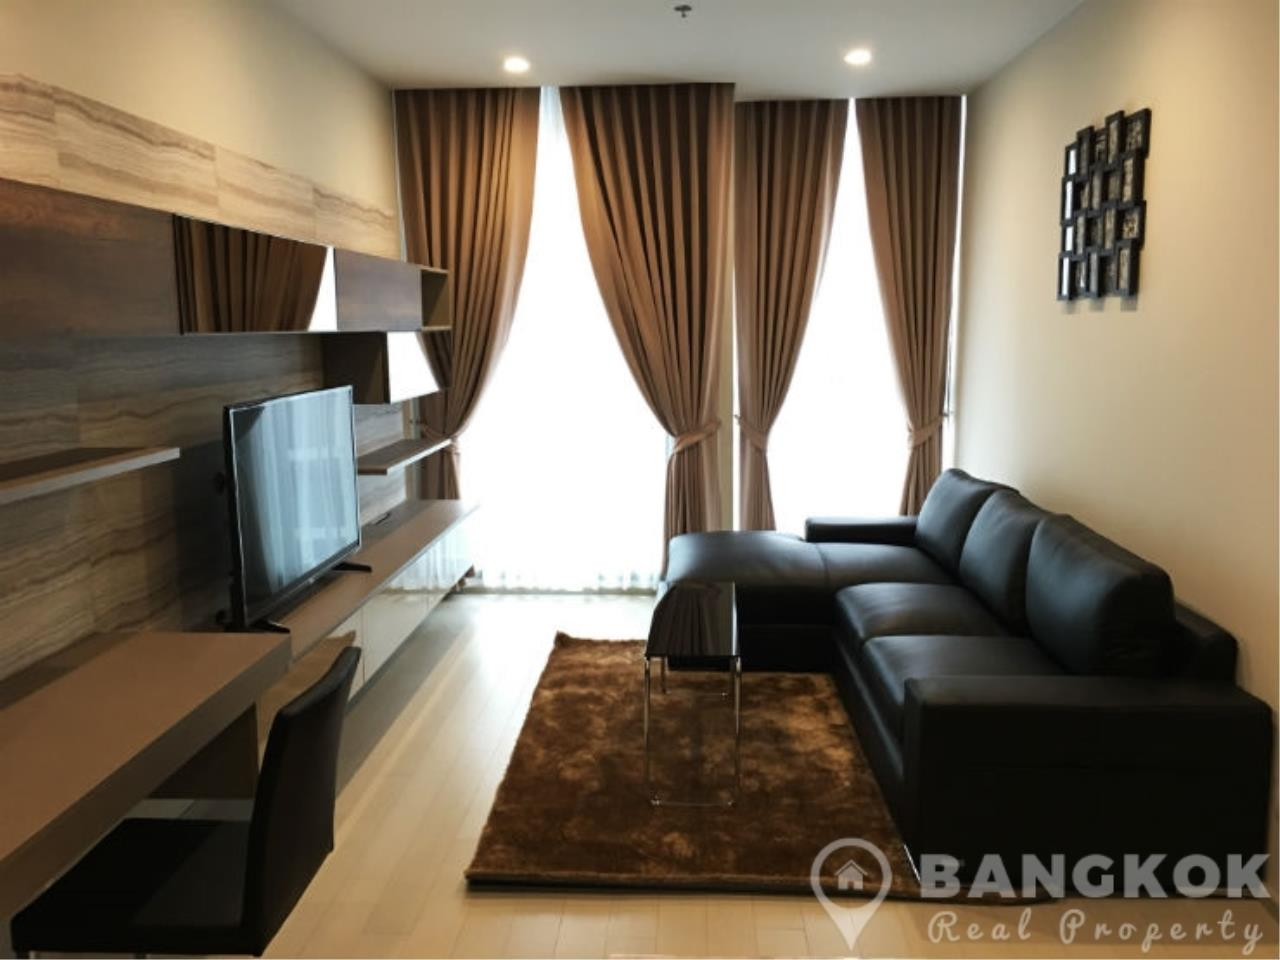 Bangkok Real Property Agency's Noble Ploenchit | Stunning 1st Rental Spacious 1 Bed at BTS 2